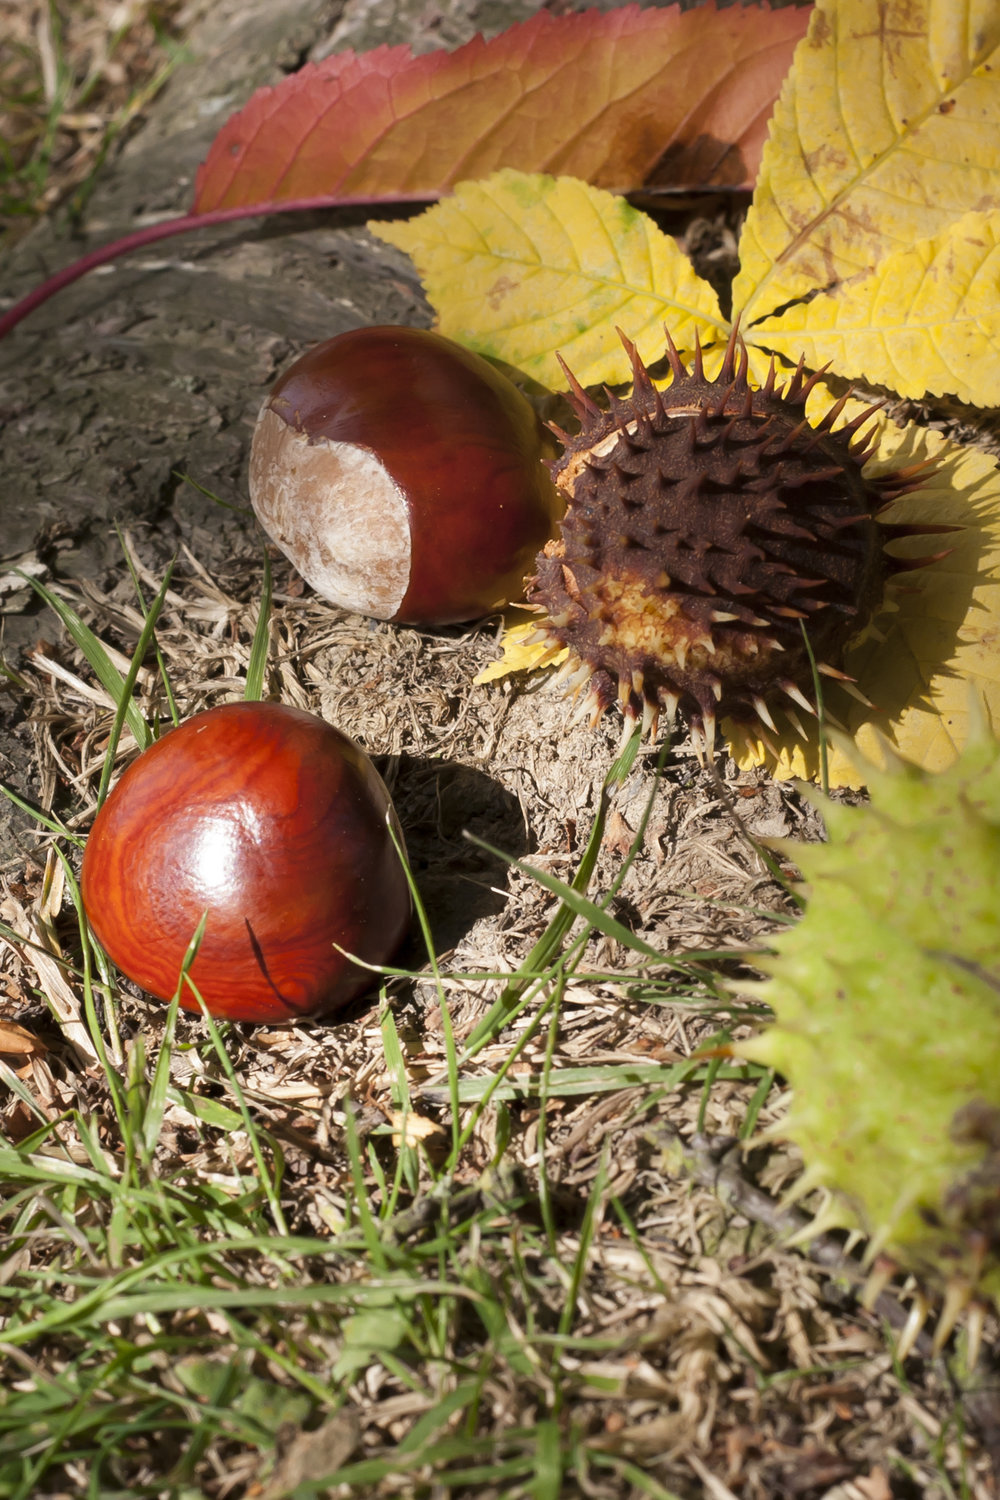 Three conkers fallen onto the forest floor amongst leaves, one conker still in its shell